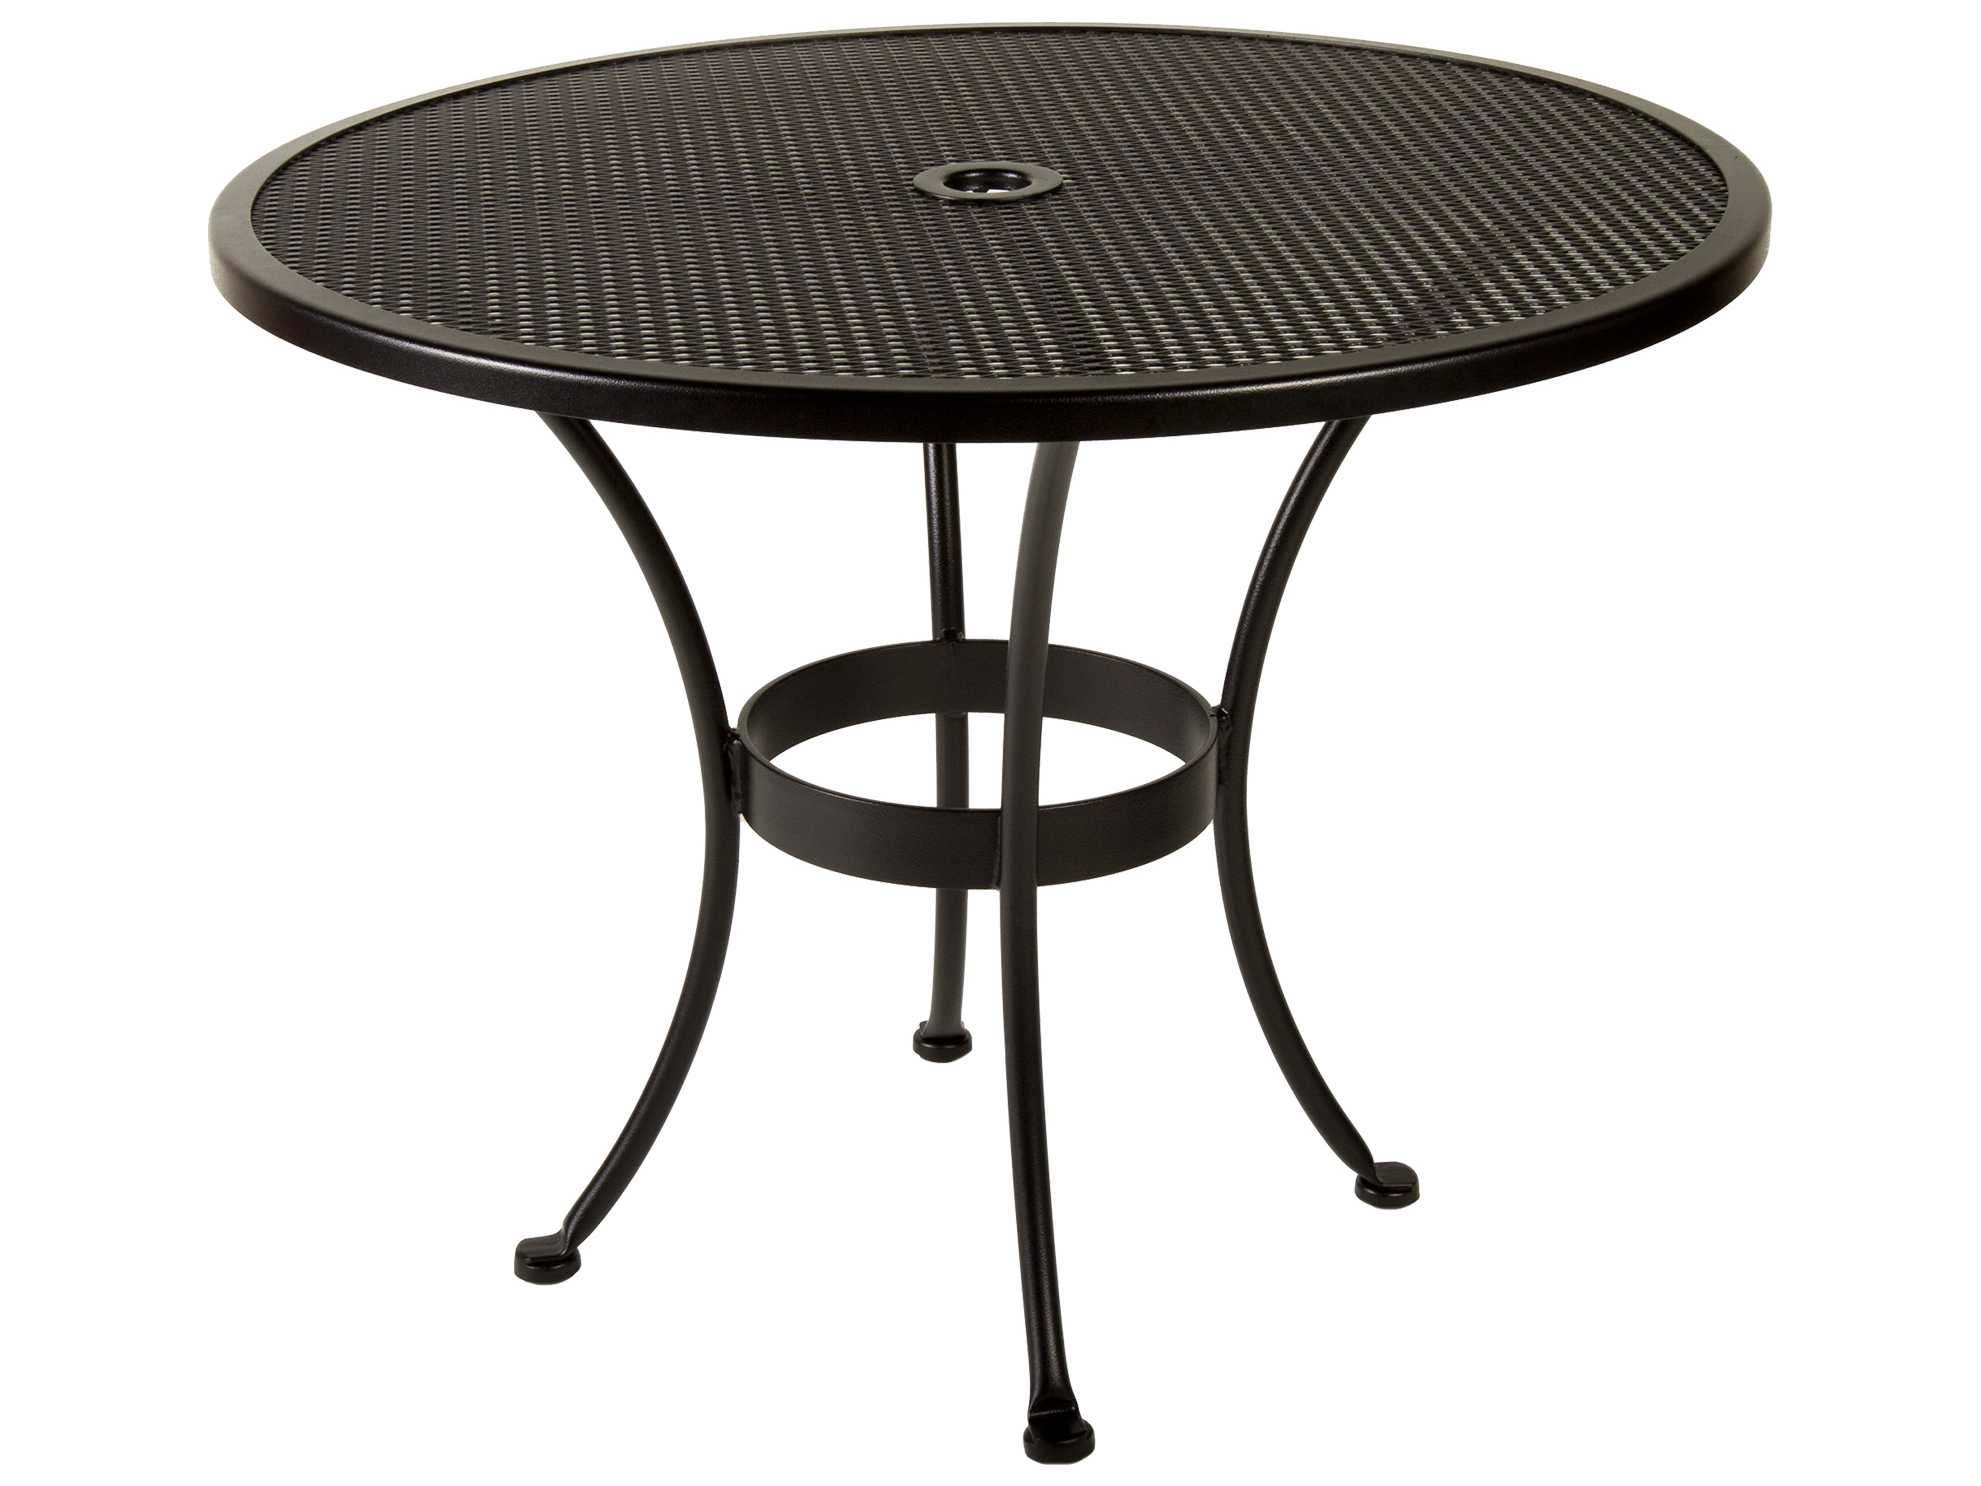 ow lee mesh wrought iron 36 round dining table with umbrella hole ow36mu. Black Bedroom Furniture Sets. Home Design Ideas